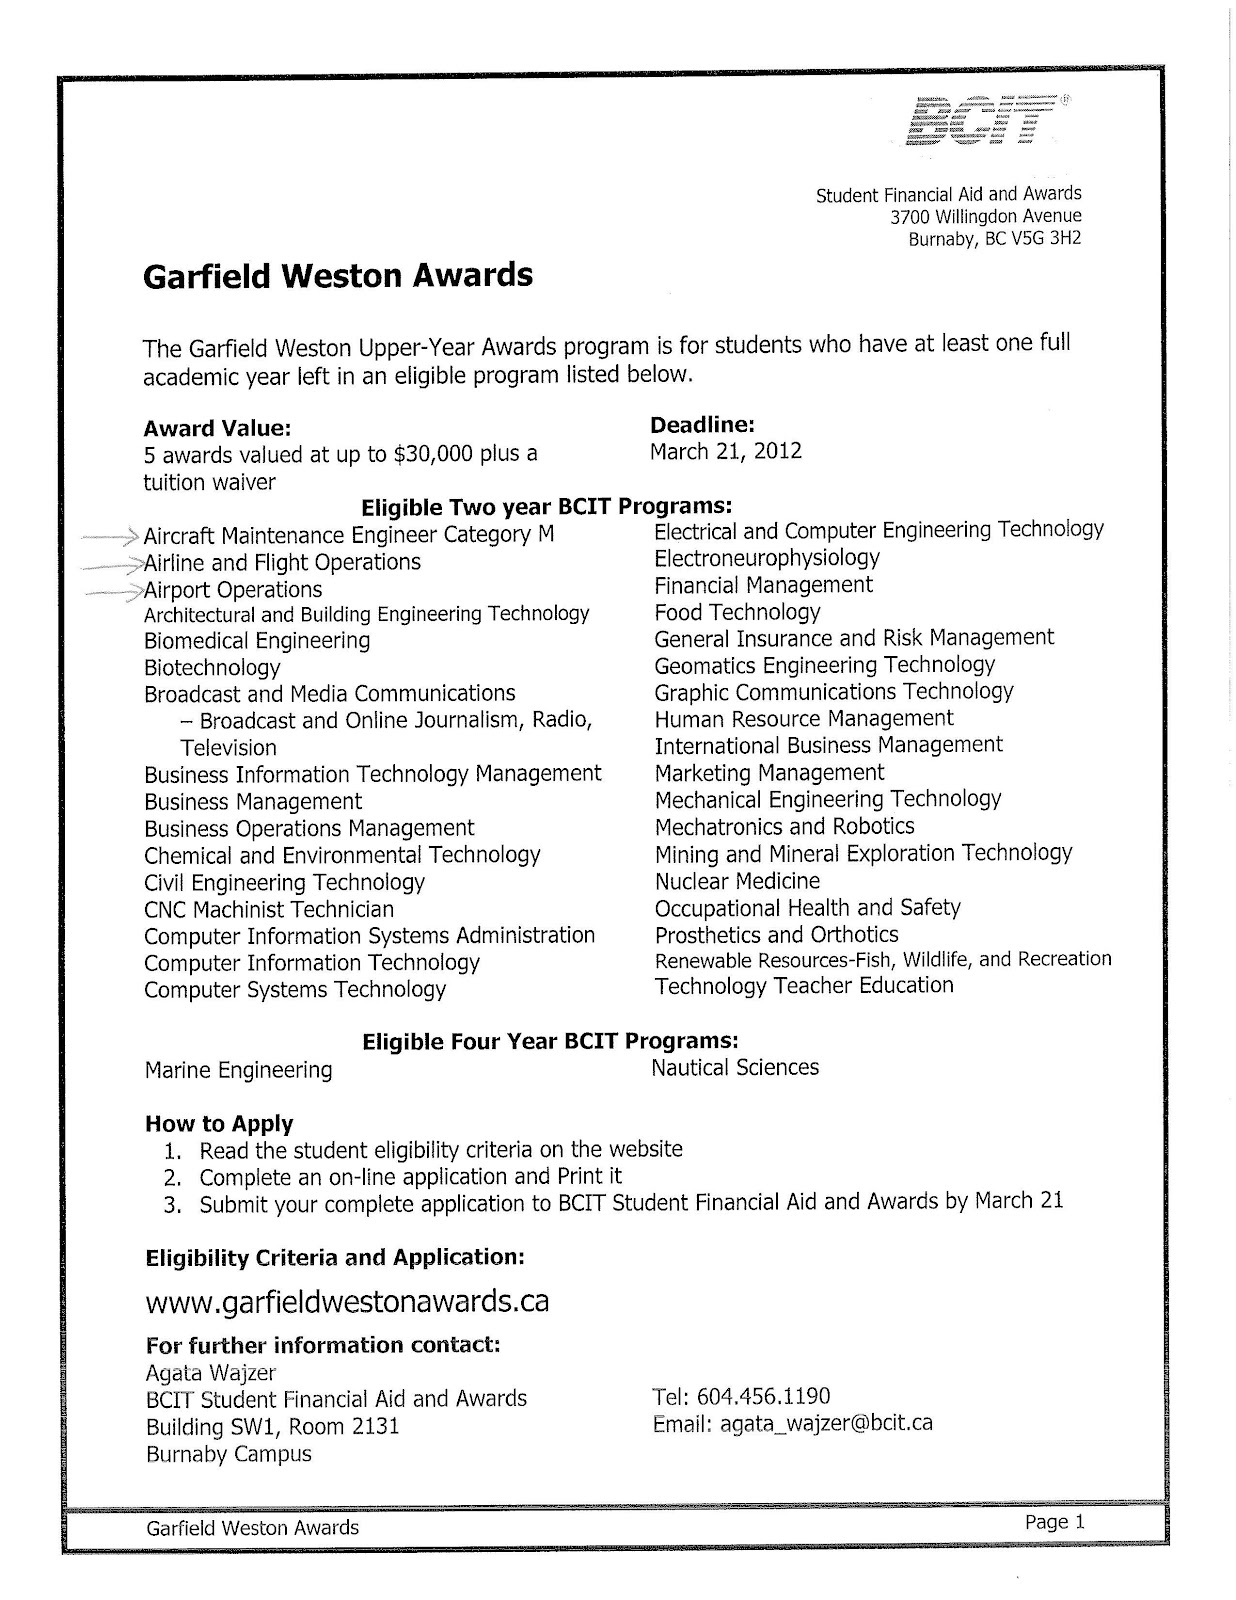 Sales Rep Resume Pharmaceutical Representative Sales Reentrycorps Garfield  Weston Awards Page 1 Sales Rep Resume Pharmaceutical  Pharmaceutical Rep Resume